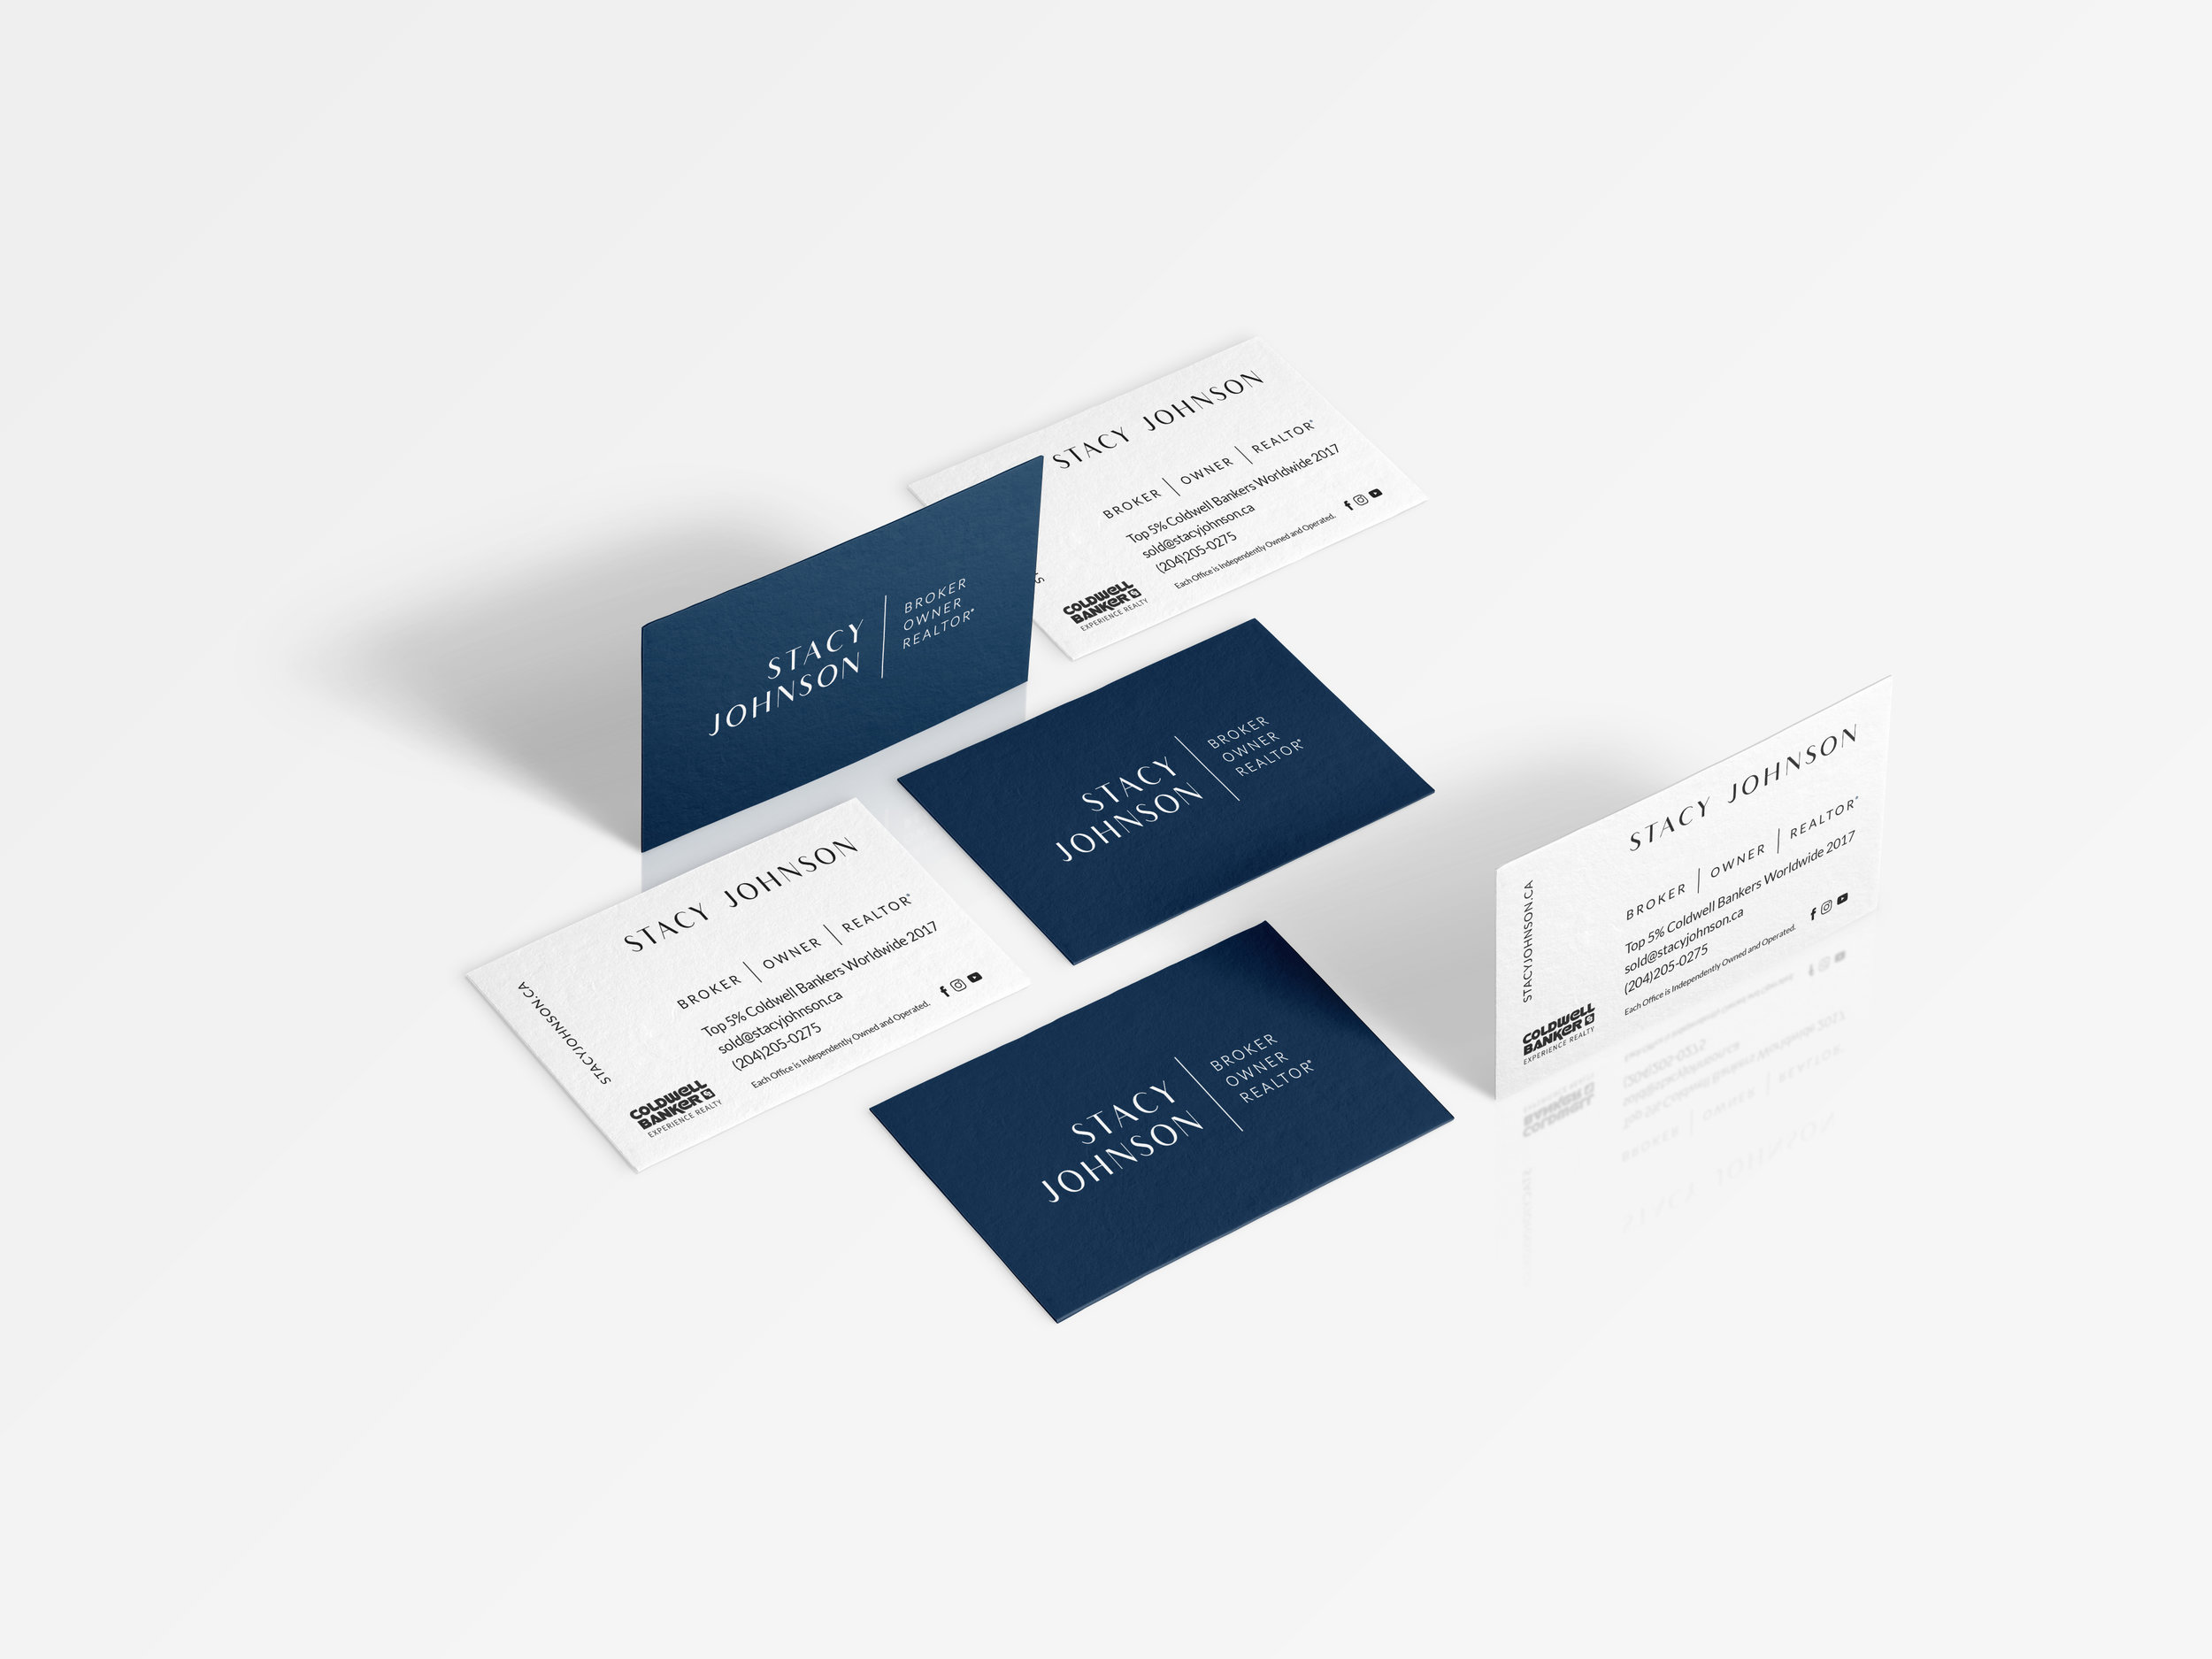 stacy-johnson-branding-design-business-cards-clover-and-crow